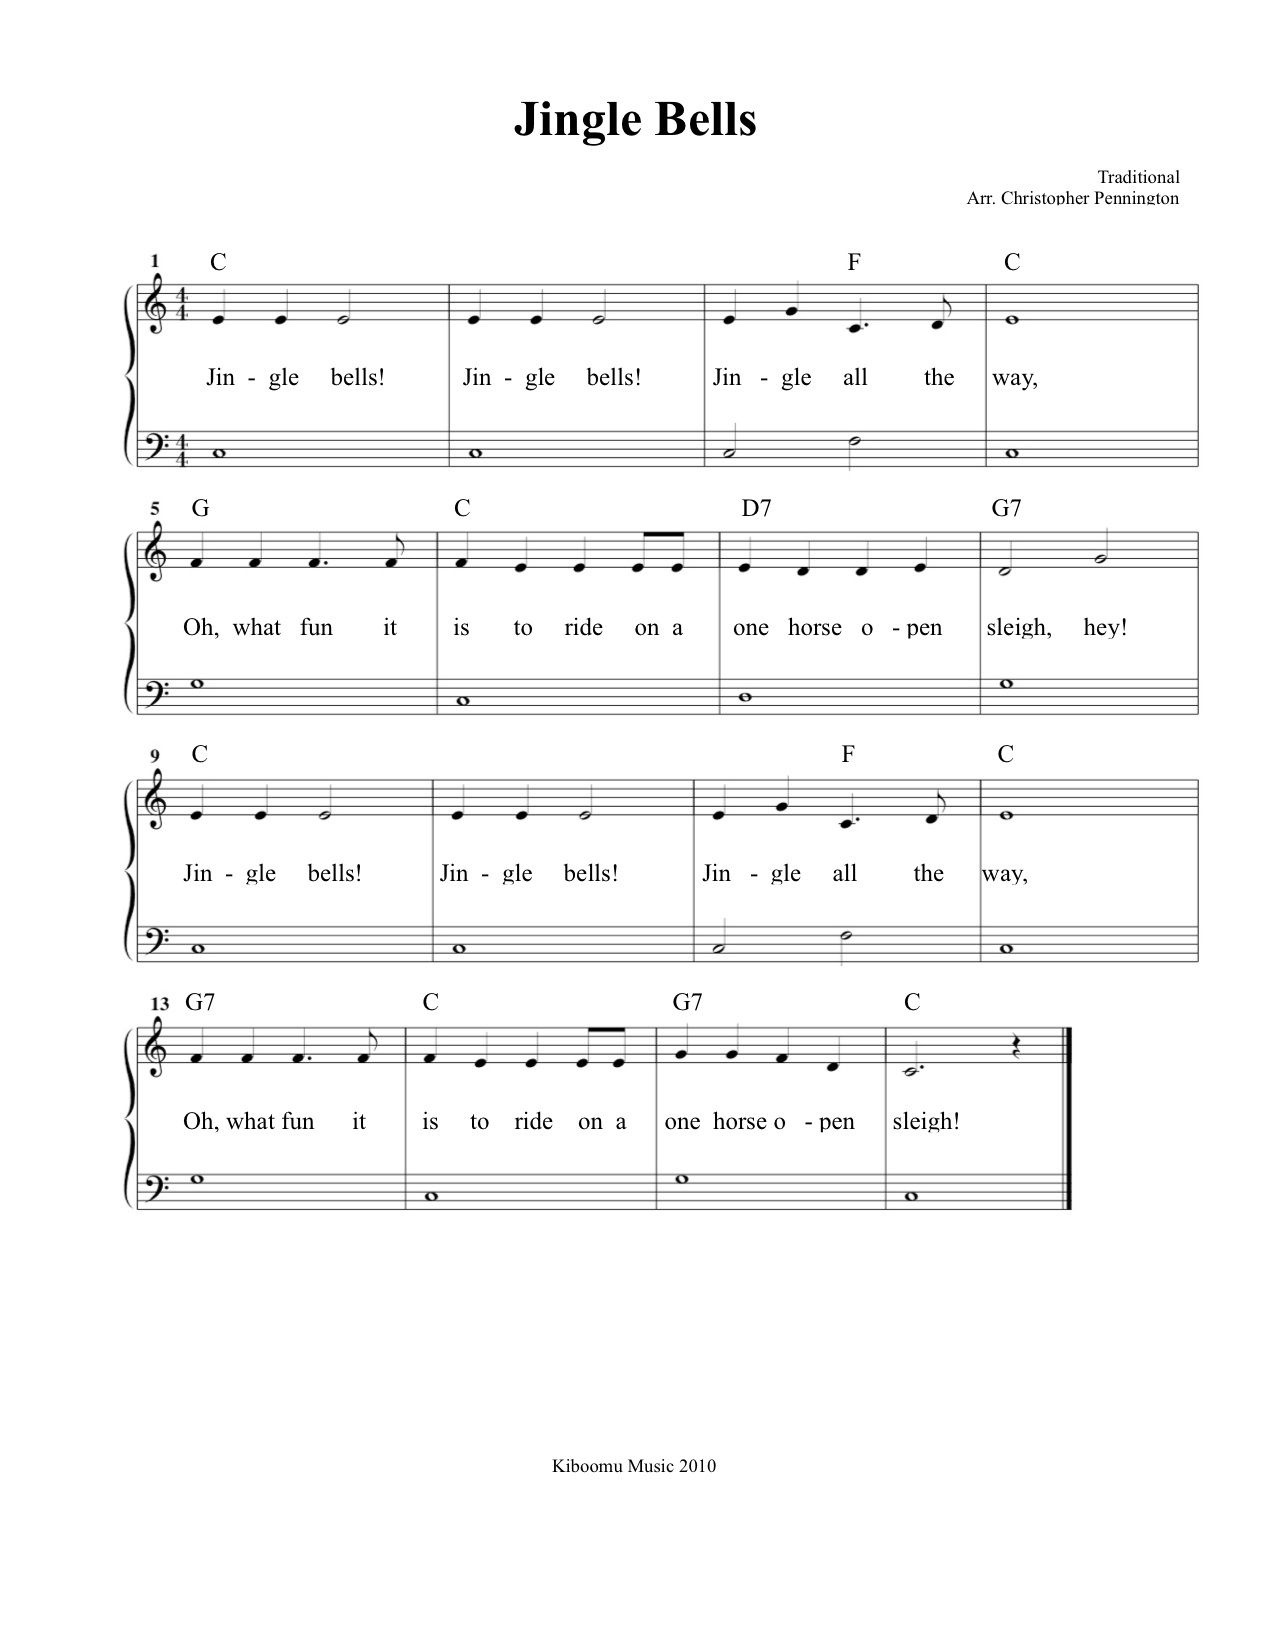 Free Printable Jingle Bells Sheet Music And Song For Kids! | Piano - Free Christmas Sheet Music For Keyboard Printable